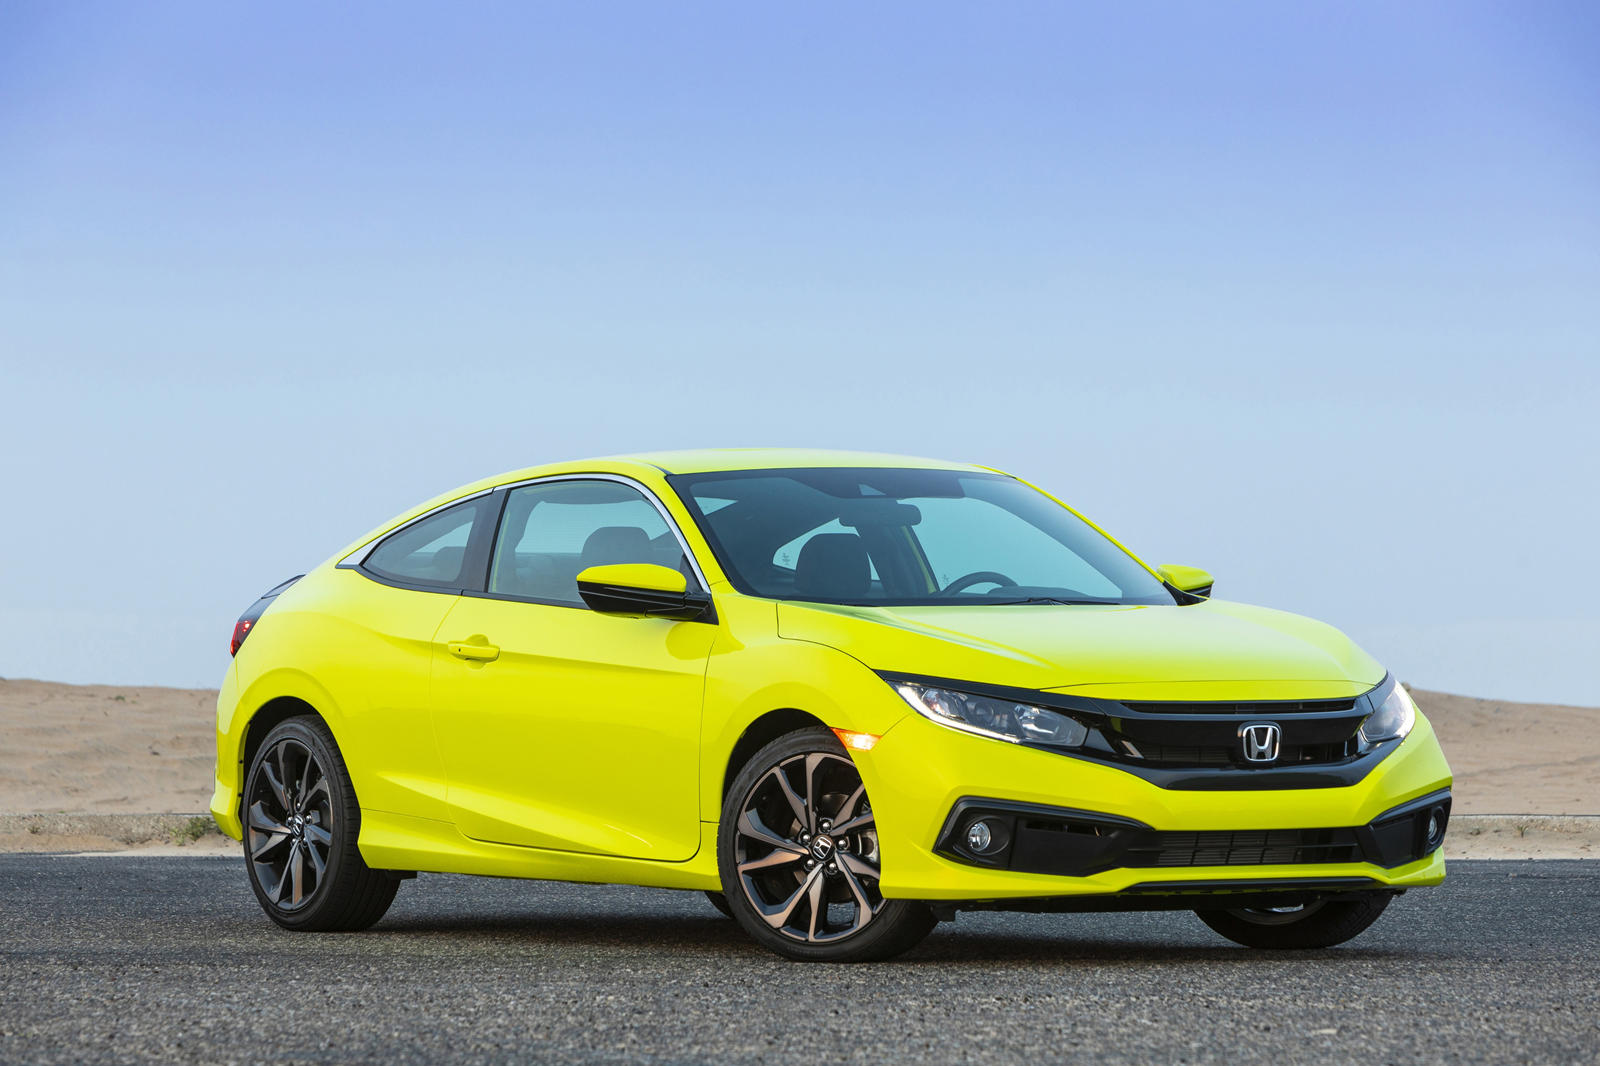 2020 Honda Civic Coupe Review Trims Specs Price New Interior Features Exterior Design And Specifications Carbuzz